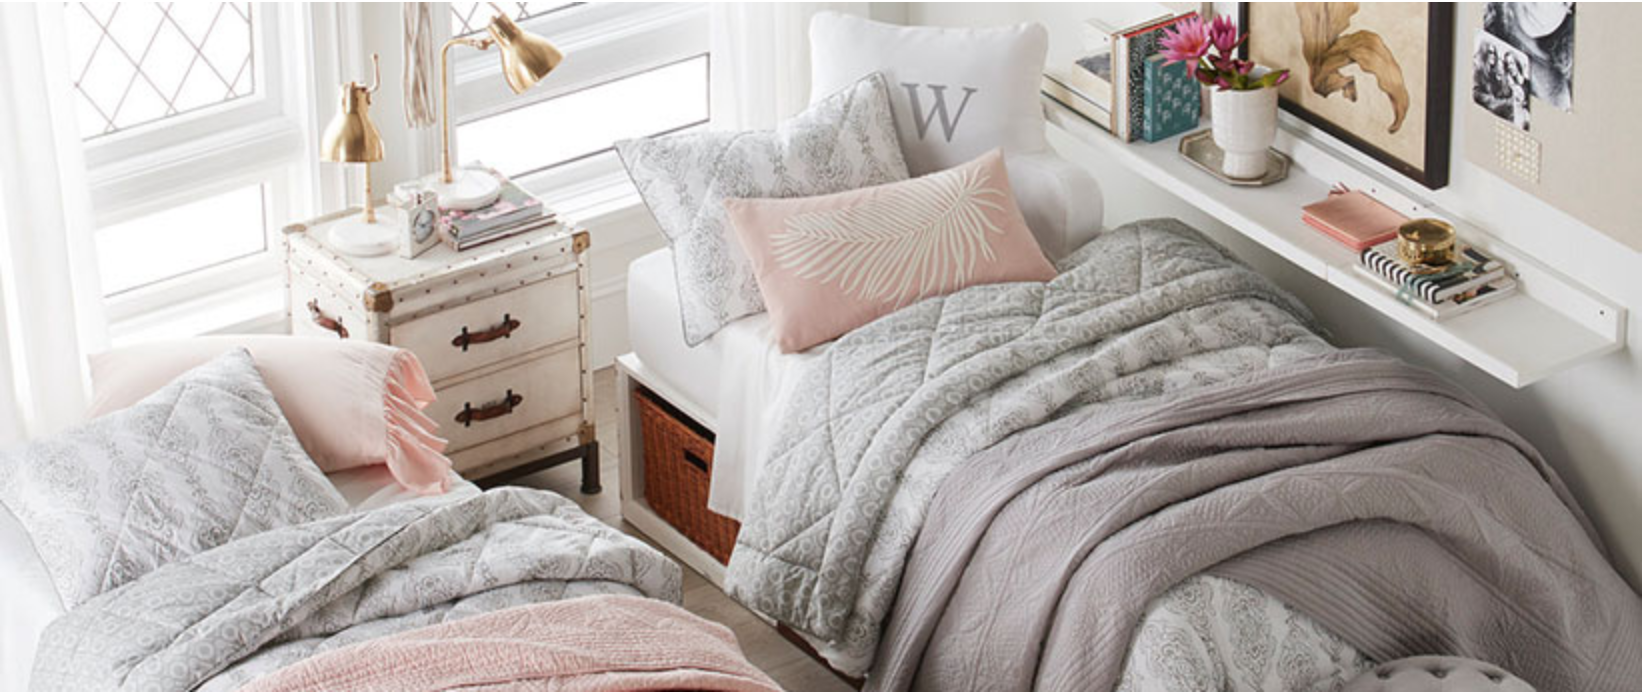 Image of Pottery Barn light pink and grey bedding in mock dorm room with gold lamp, white bedside table, and decorative pink throw pillow with white feather